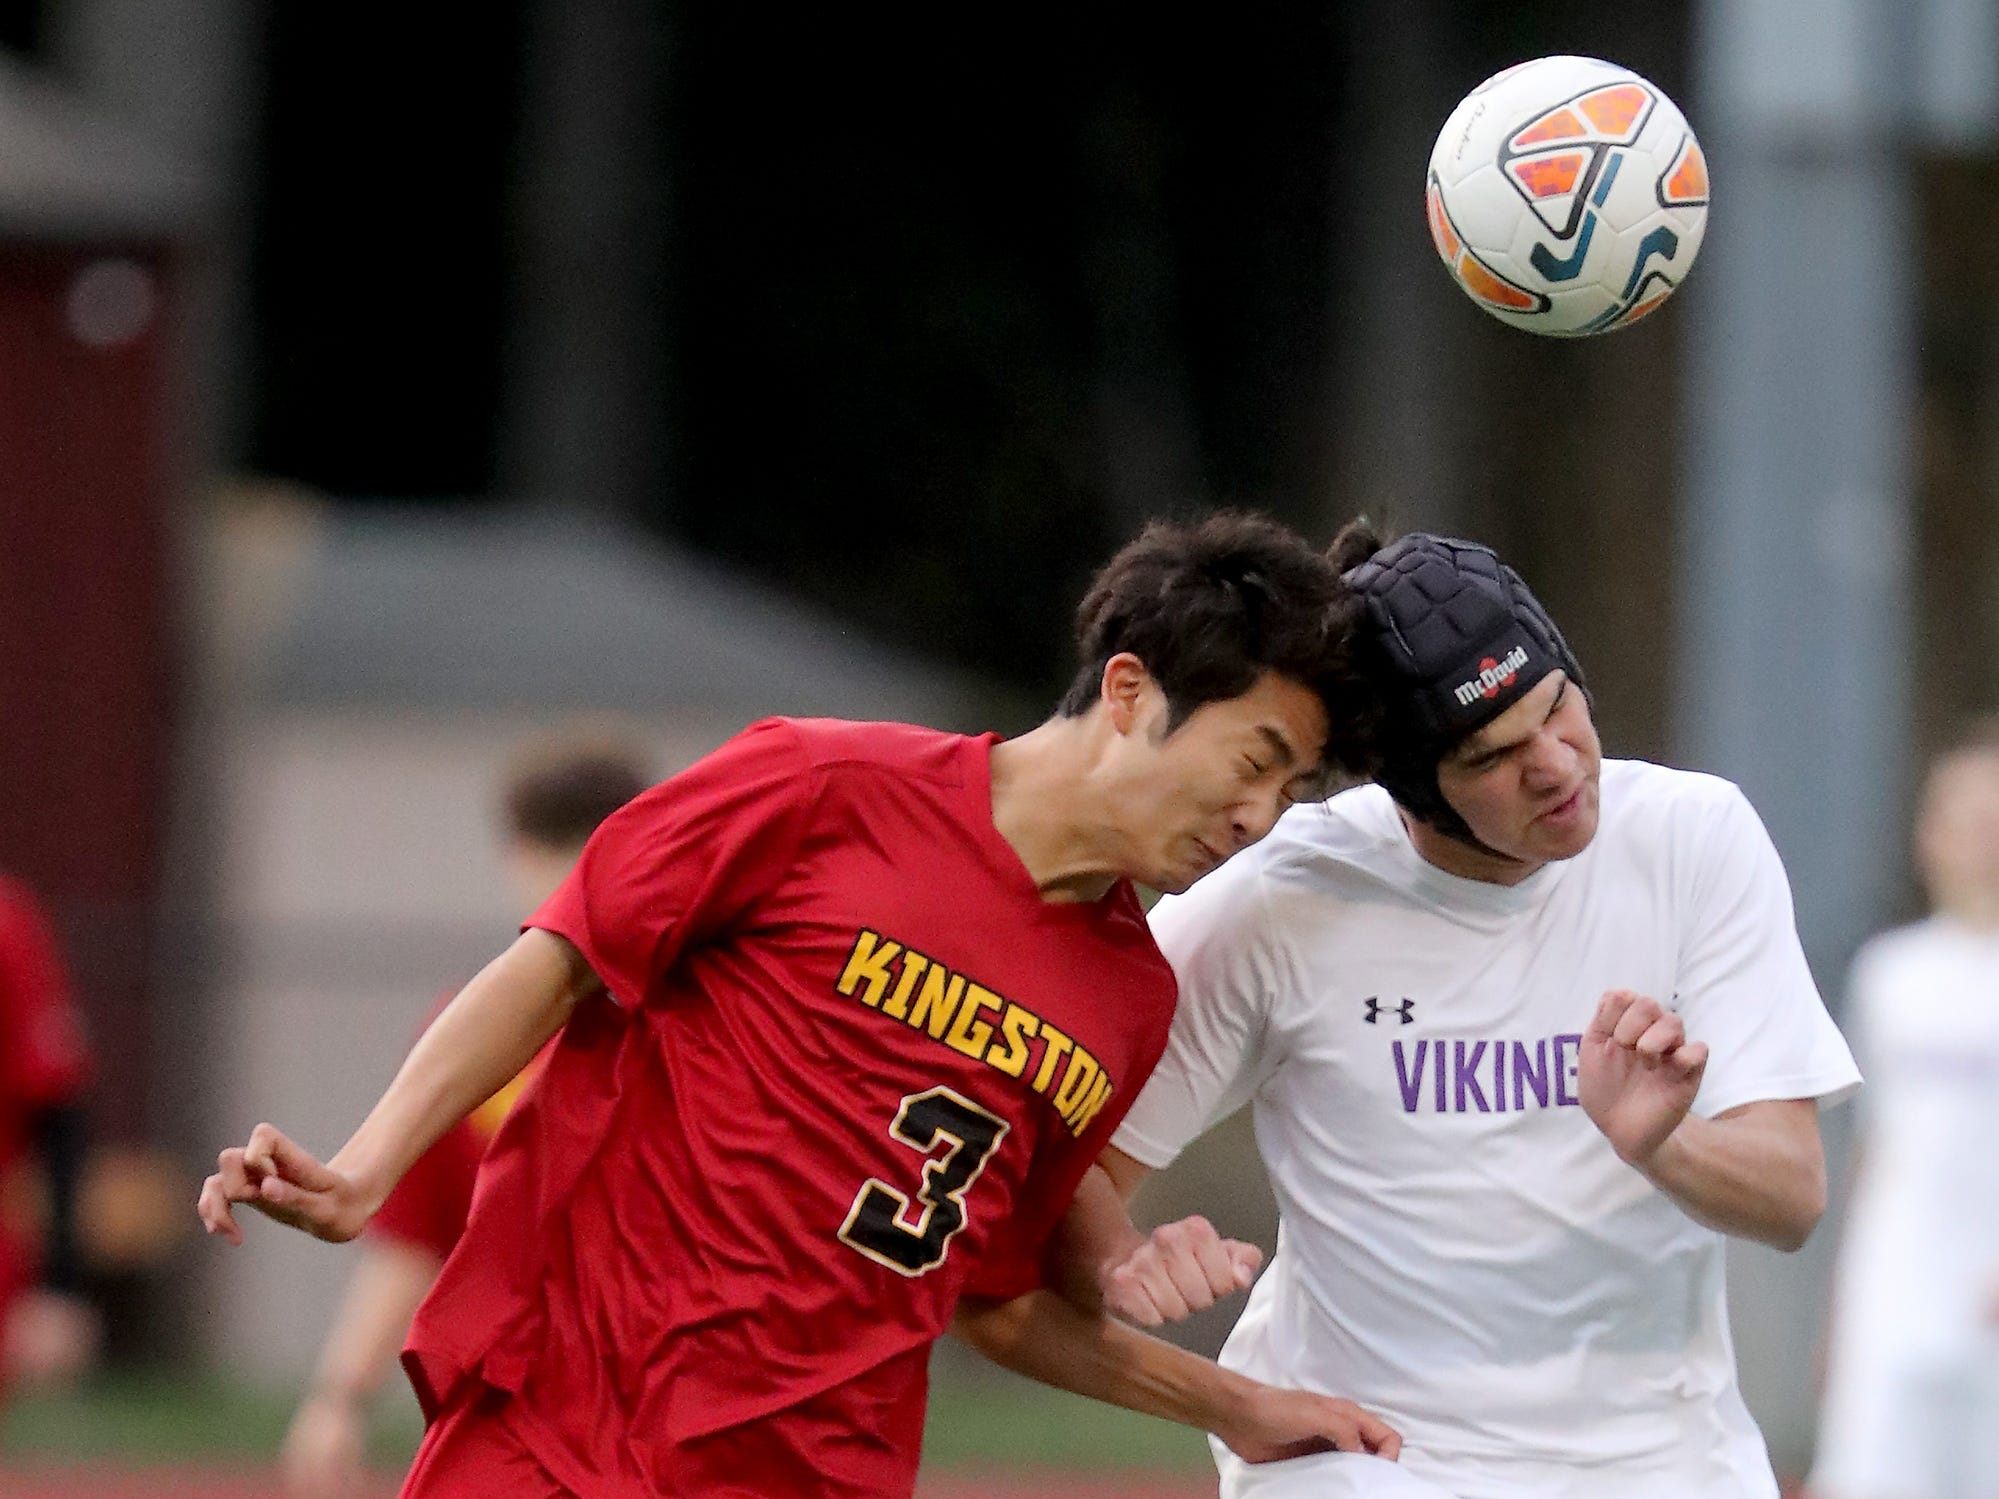 Kingston's Ryuzo Kumei (3) and North Kitsap's Luca Laura connect wth a header in Kingston on Tuesday, April 9, 2019.